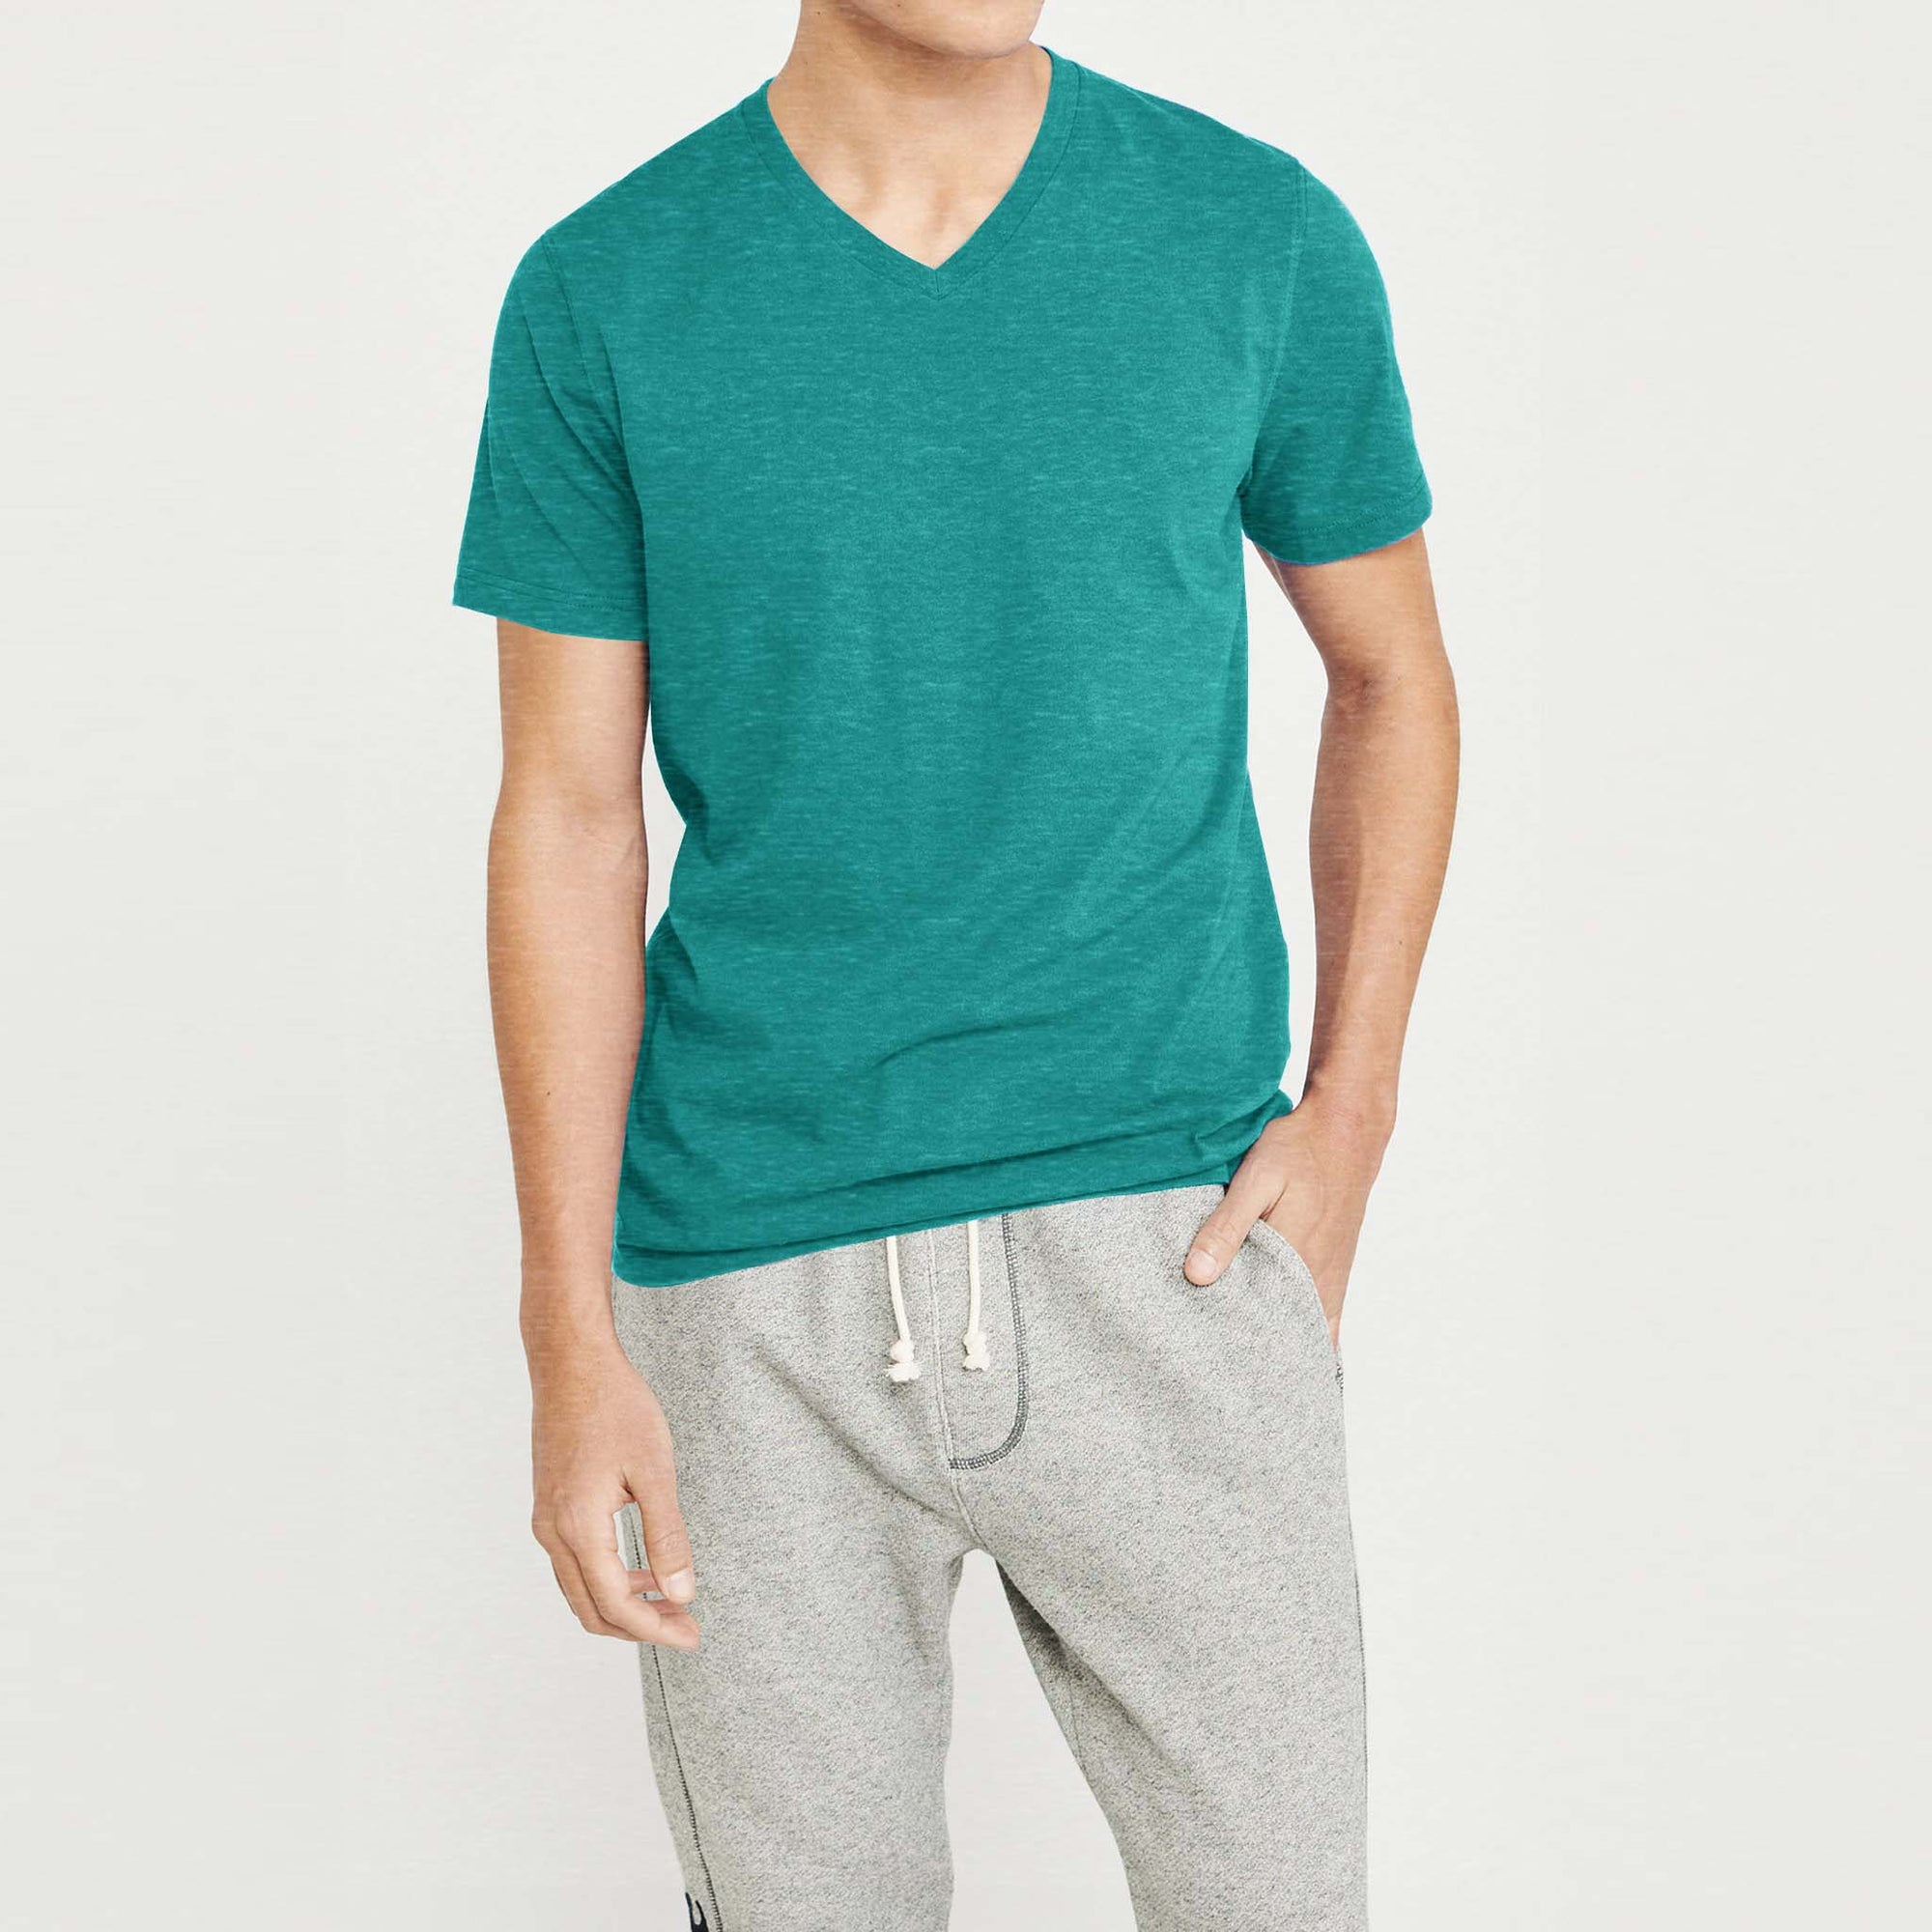 Beverly Hills V Neck Half Sleeve Tee Shirt For Men-Cyan Melange-SP3238